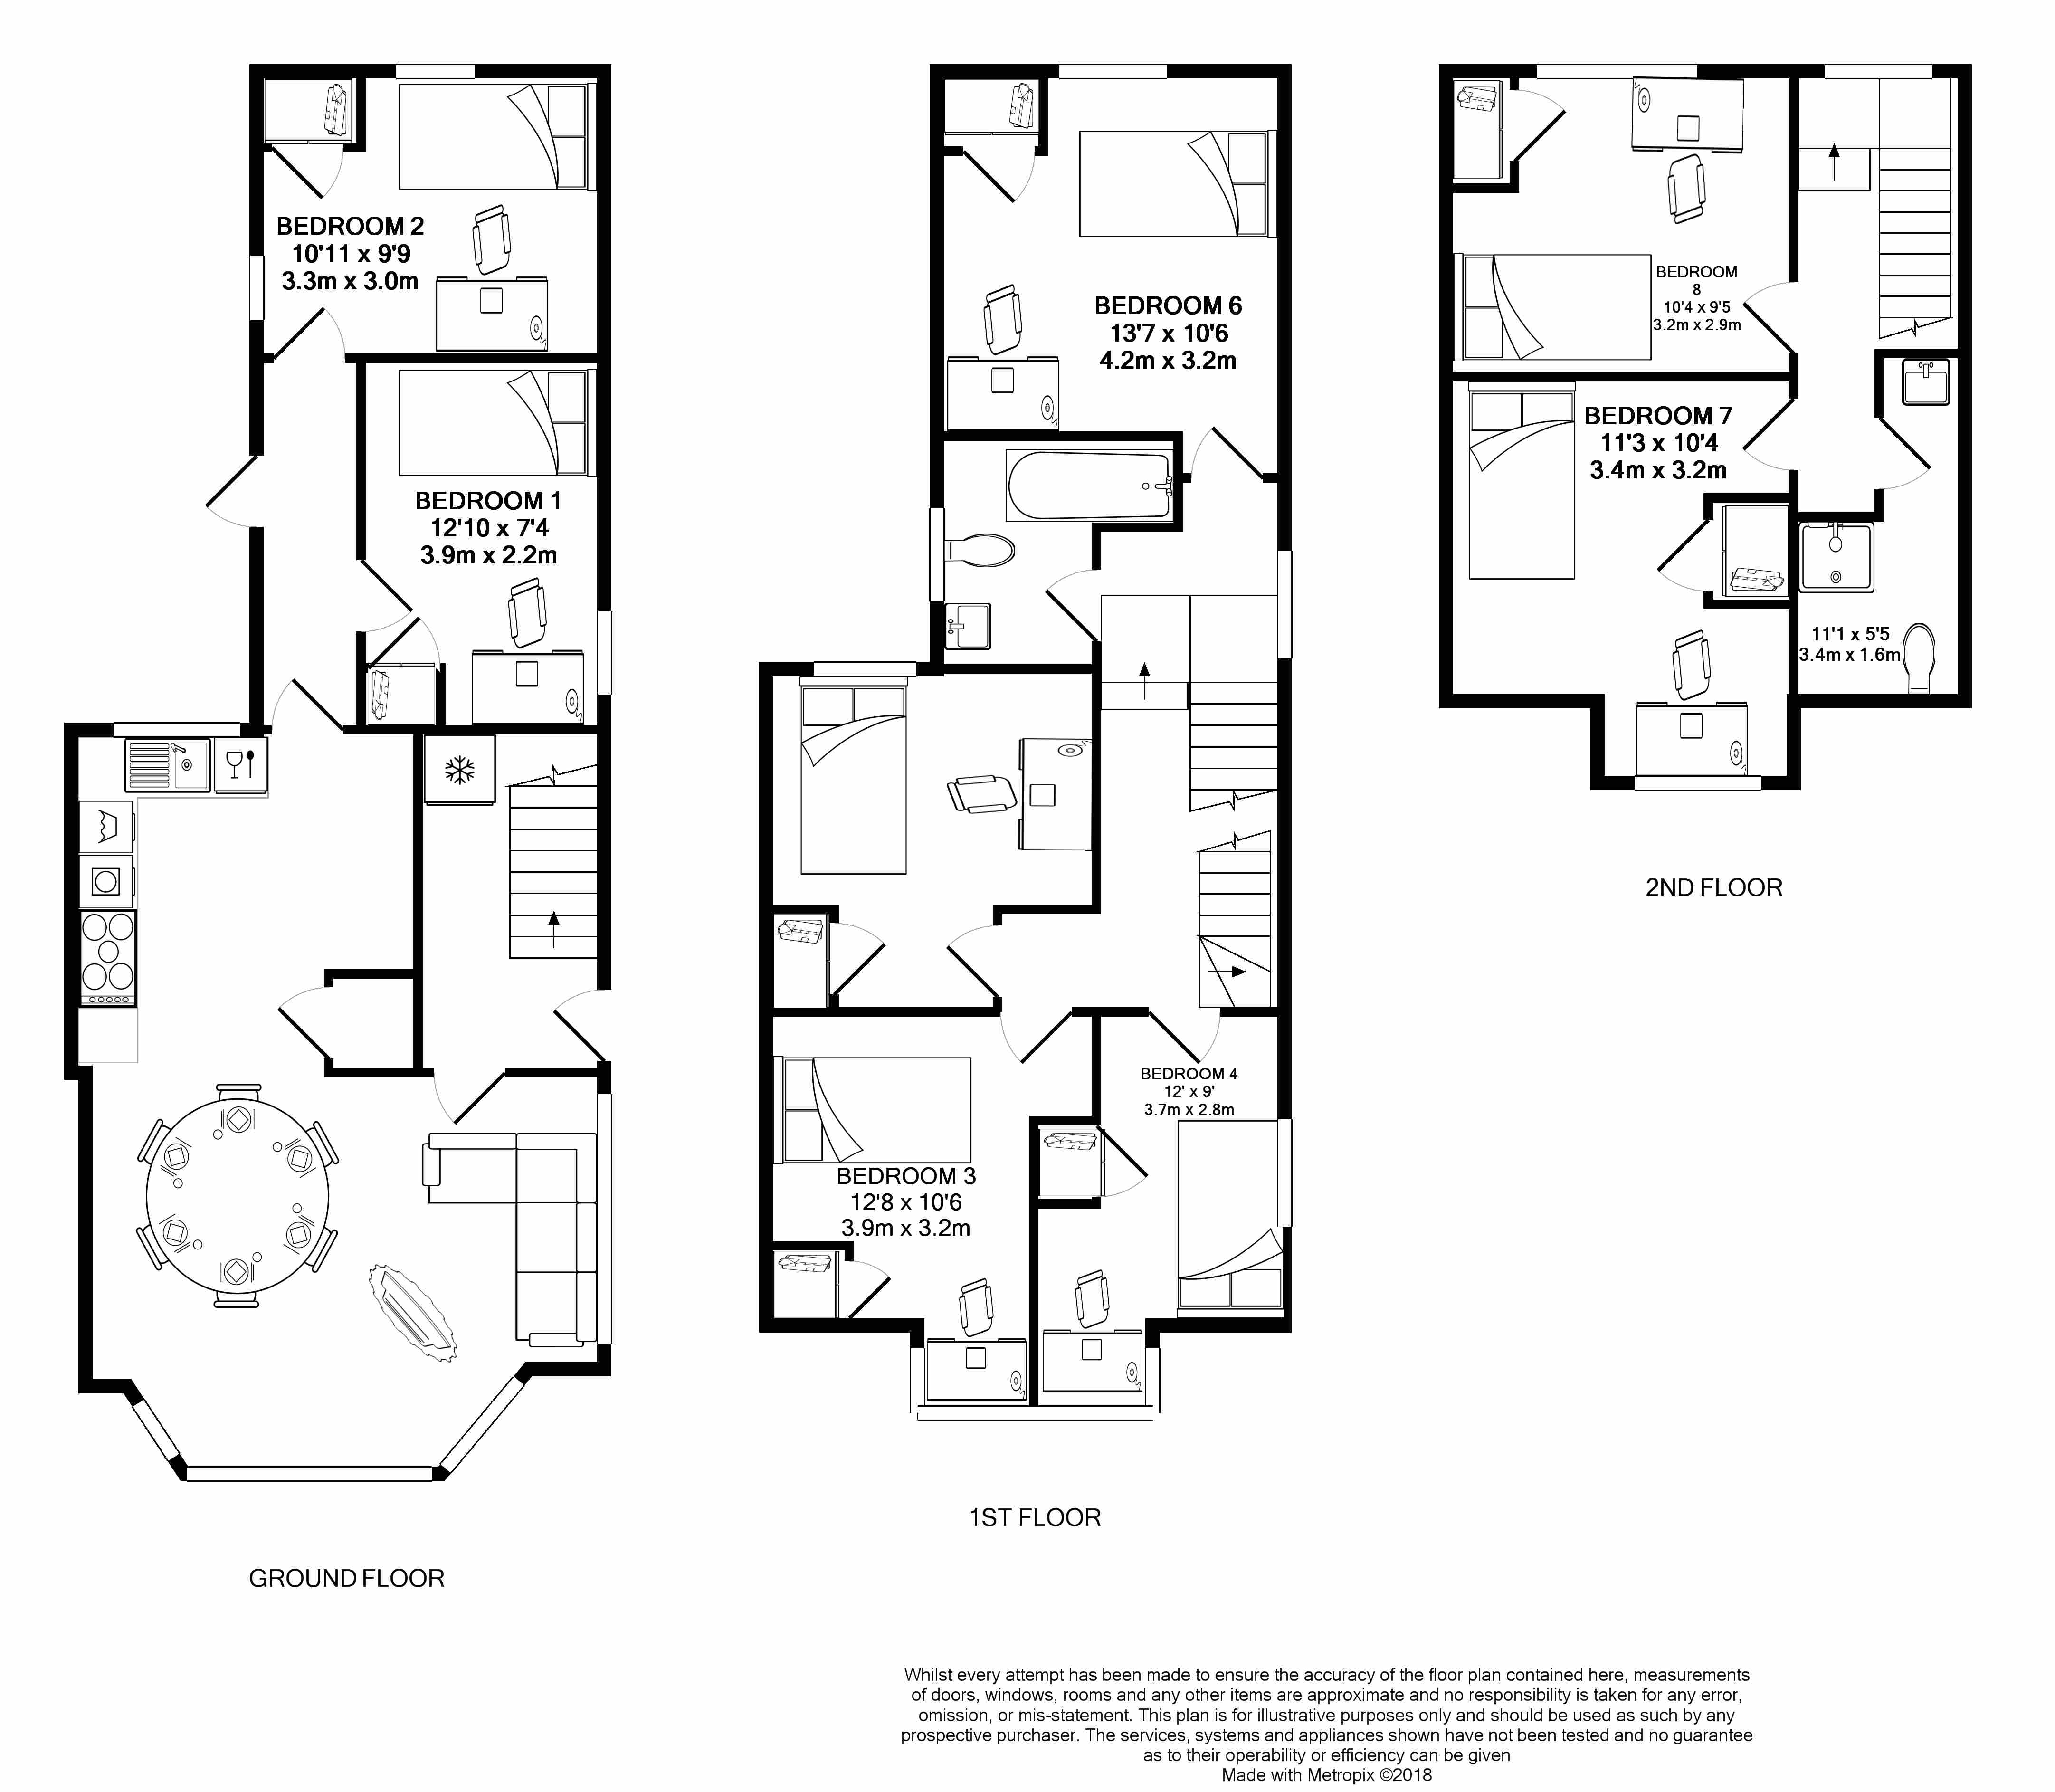 17 Clinton Avenue - floorplans